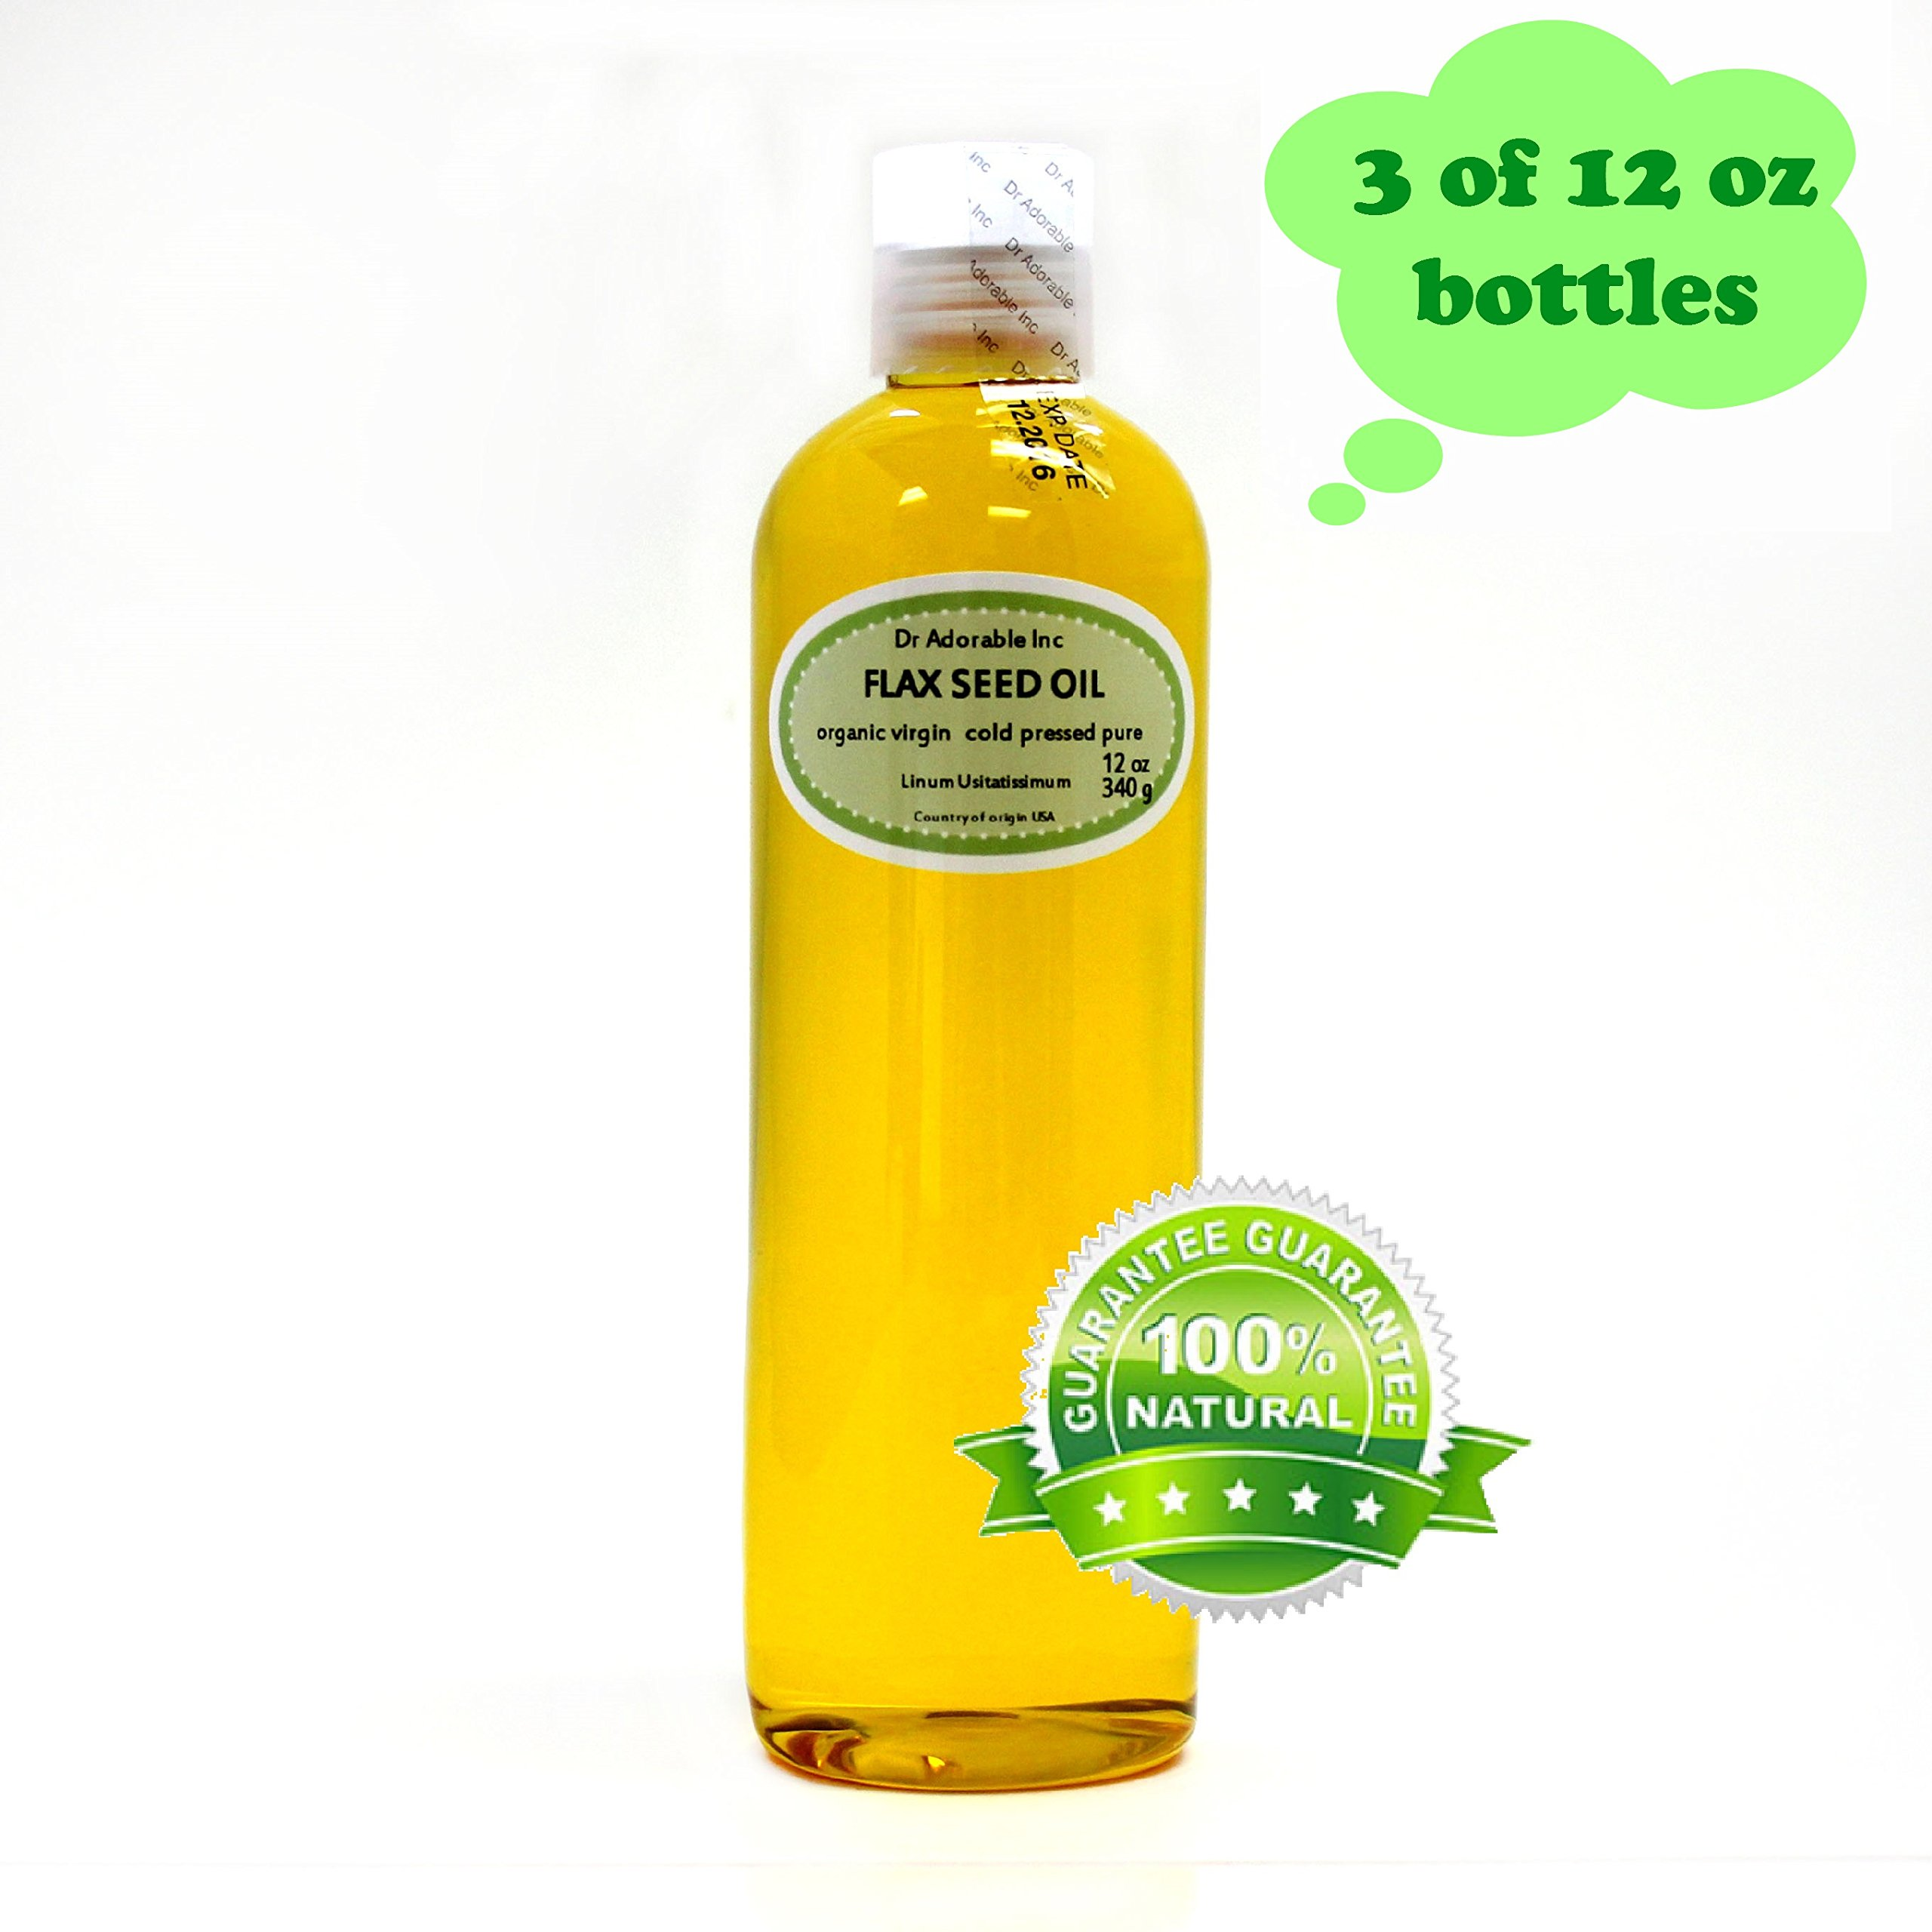 Flax Seed Oil Organic Pure 36 Oz by Dr Adorable